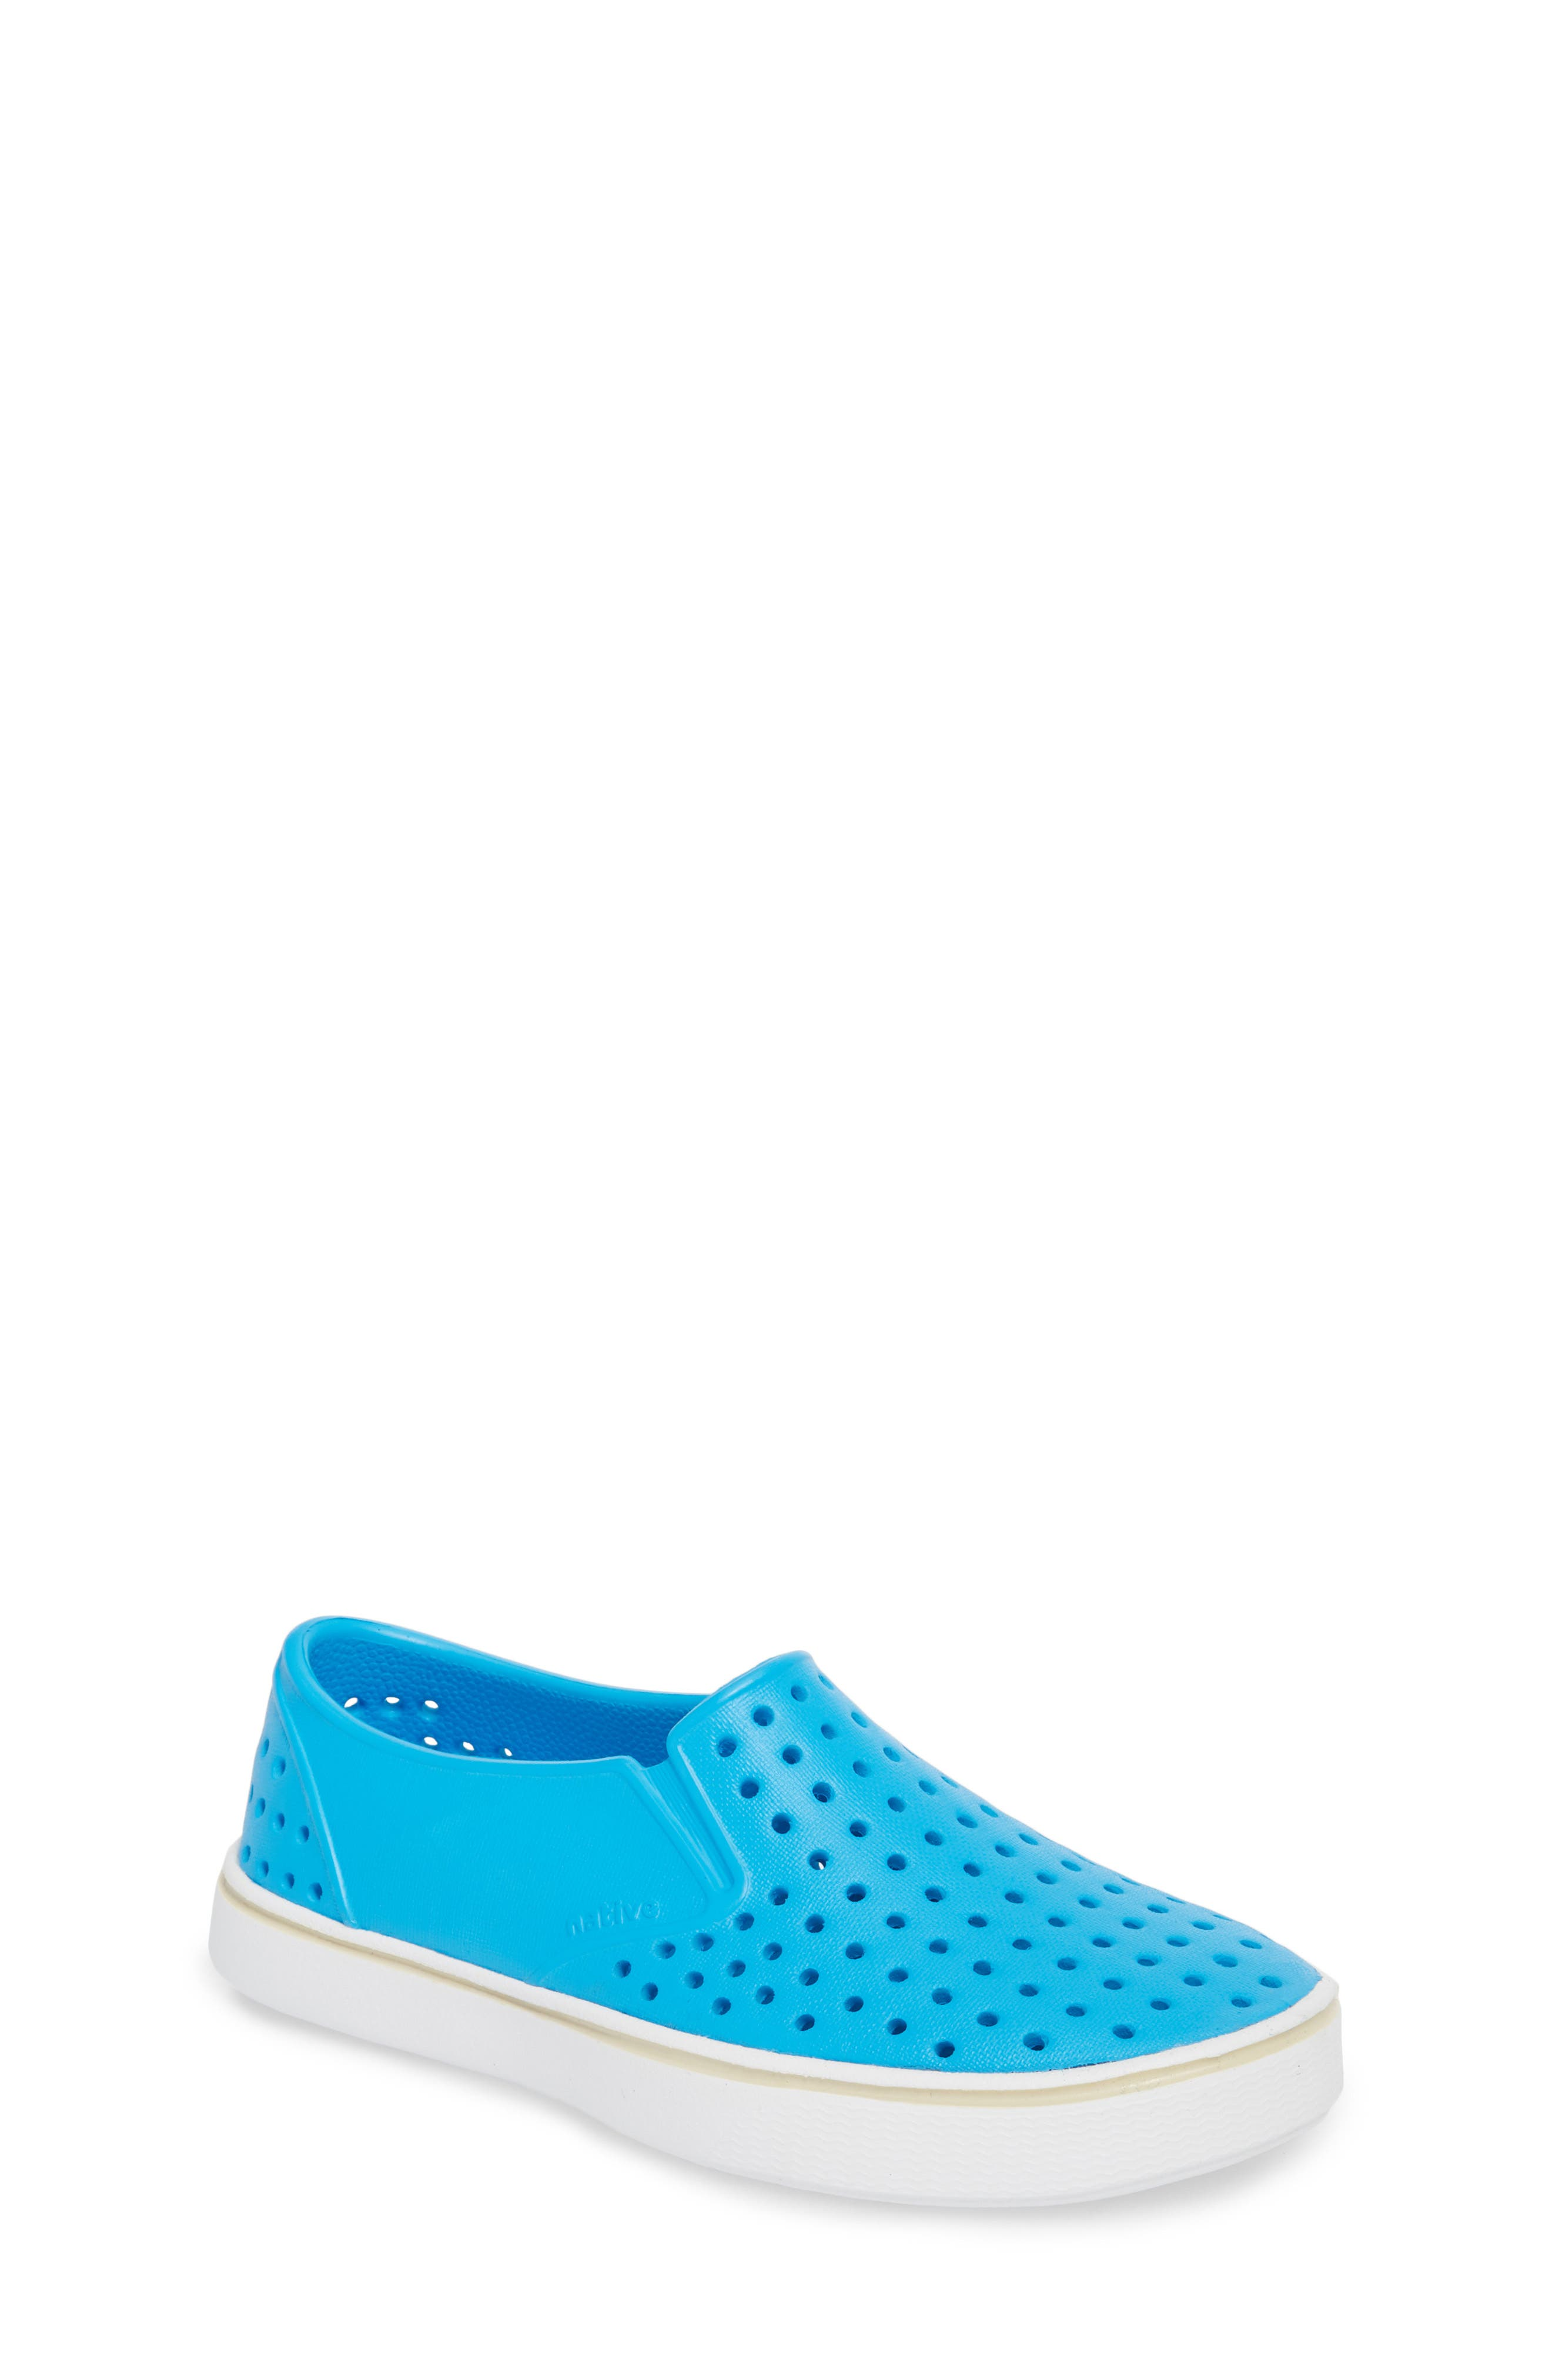 Miles Water Friendly Slip-On Sneaker,                             Main thumbnail 1, color,                             Wave Blue/ Shell White